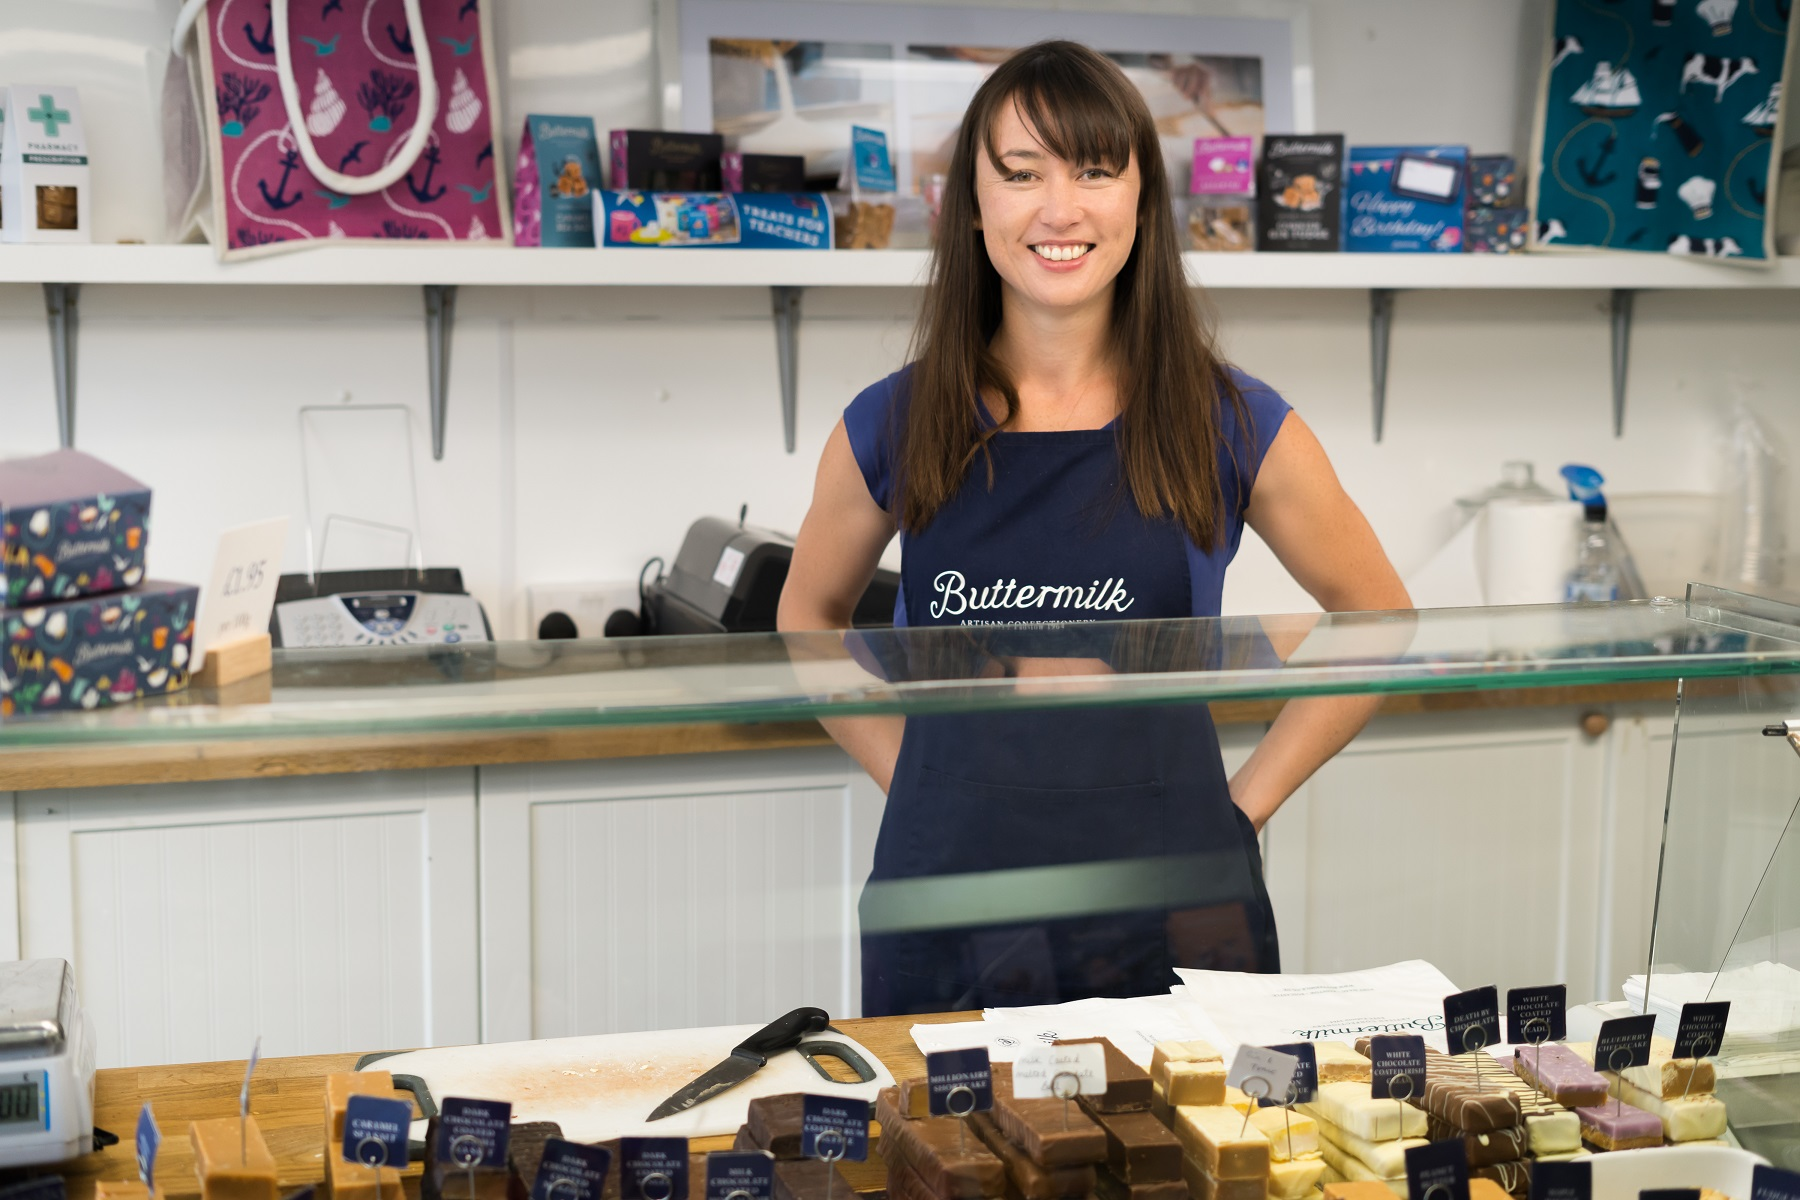 NatWest and ITV Search for UK's 'Extraordinary' SMEs in New Competition